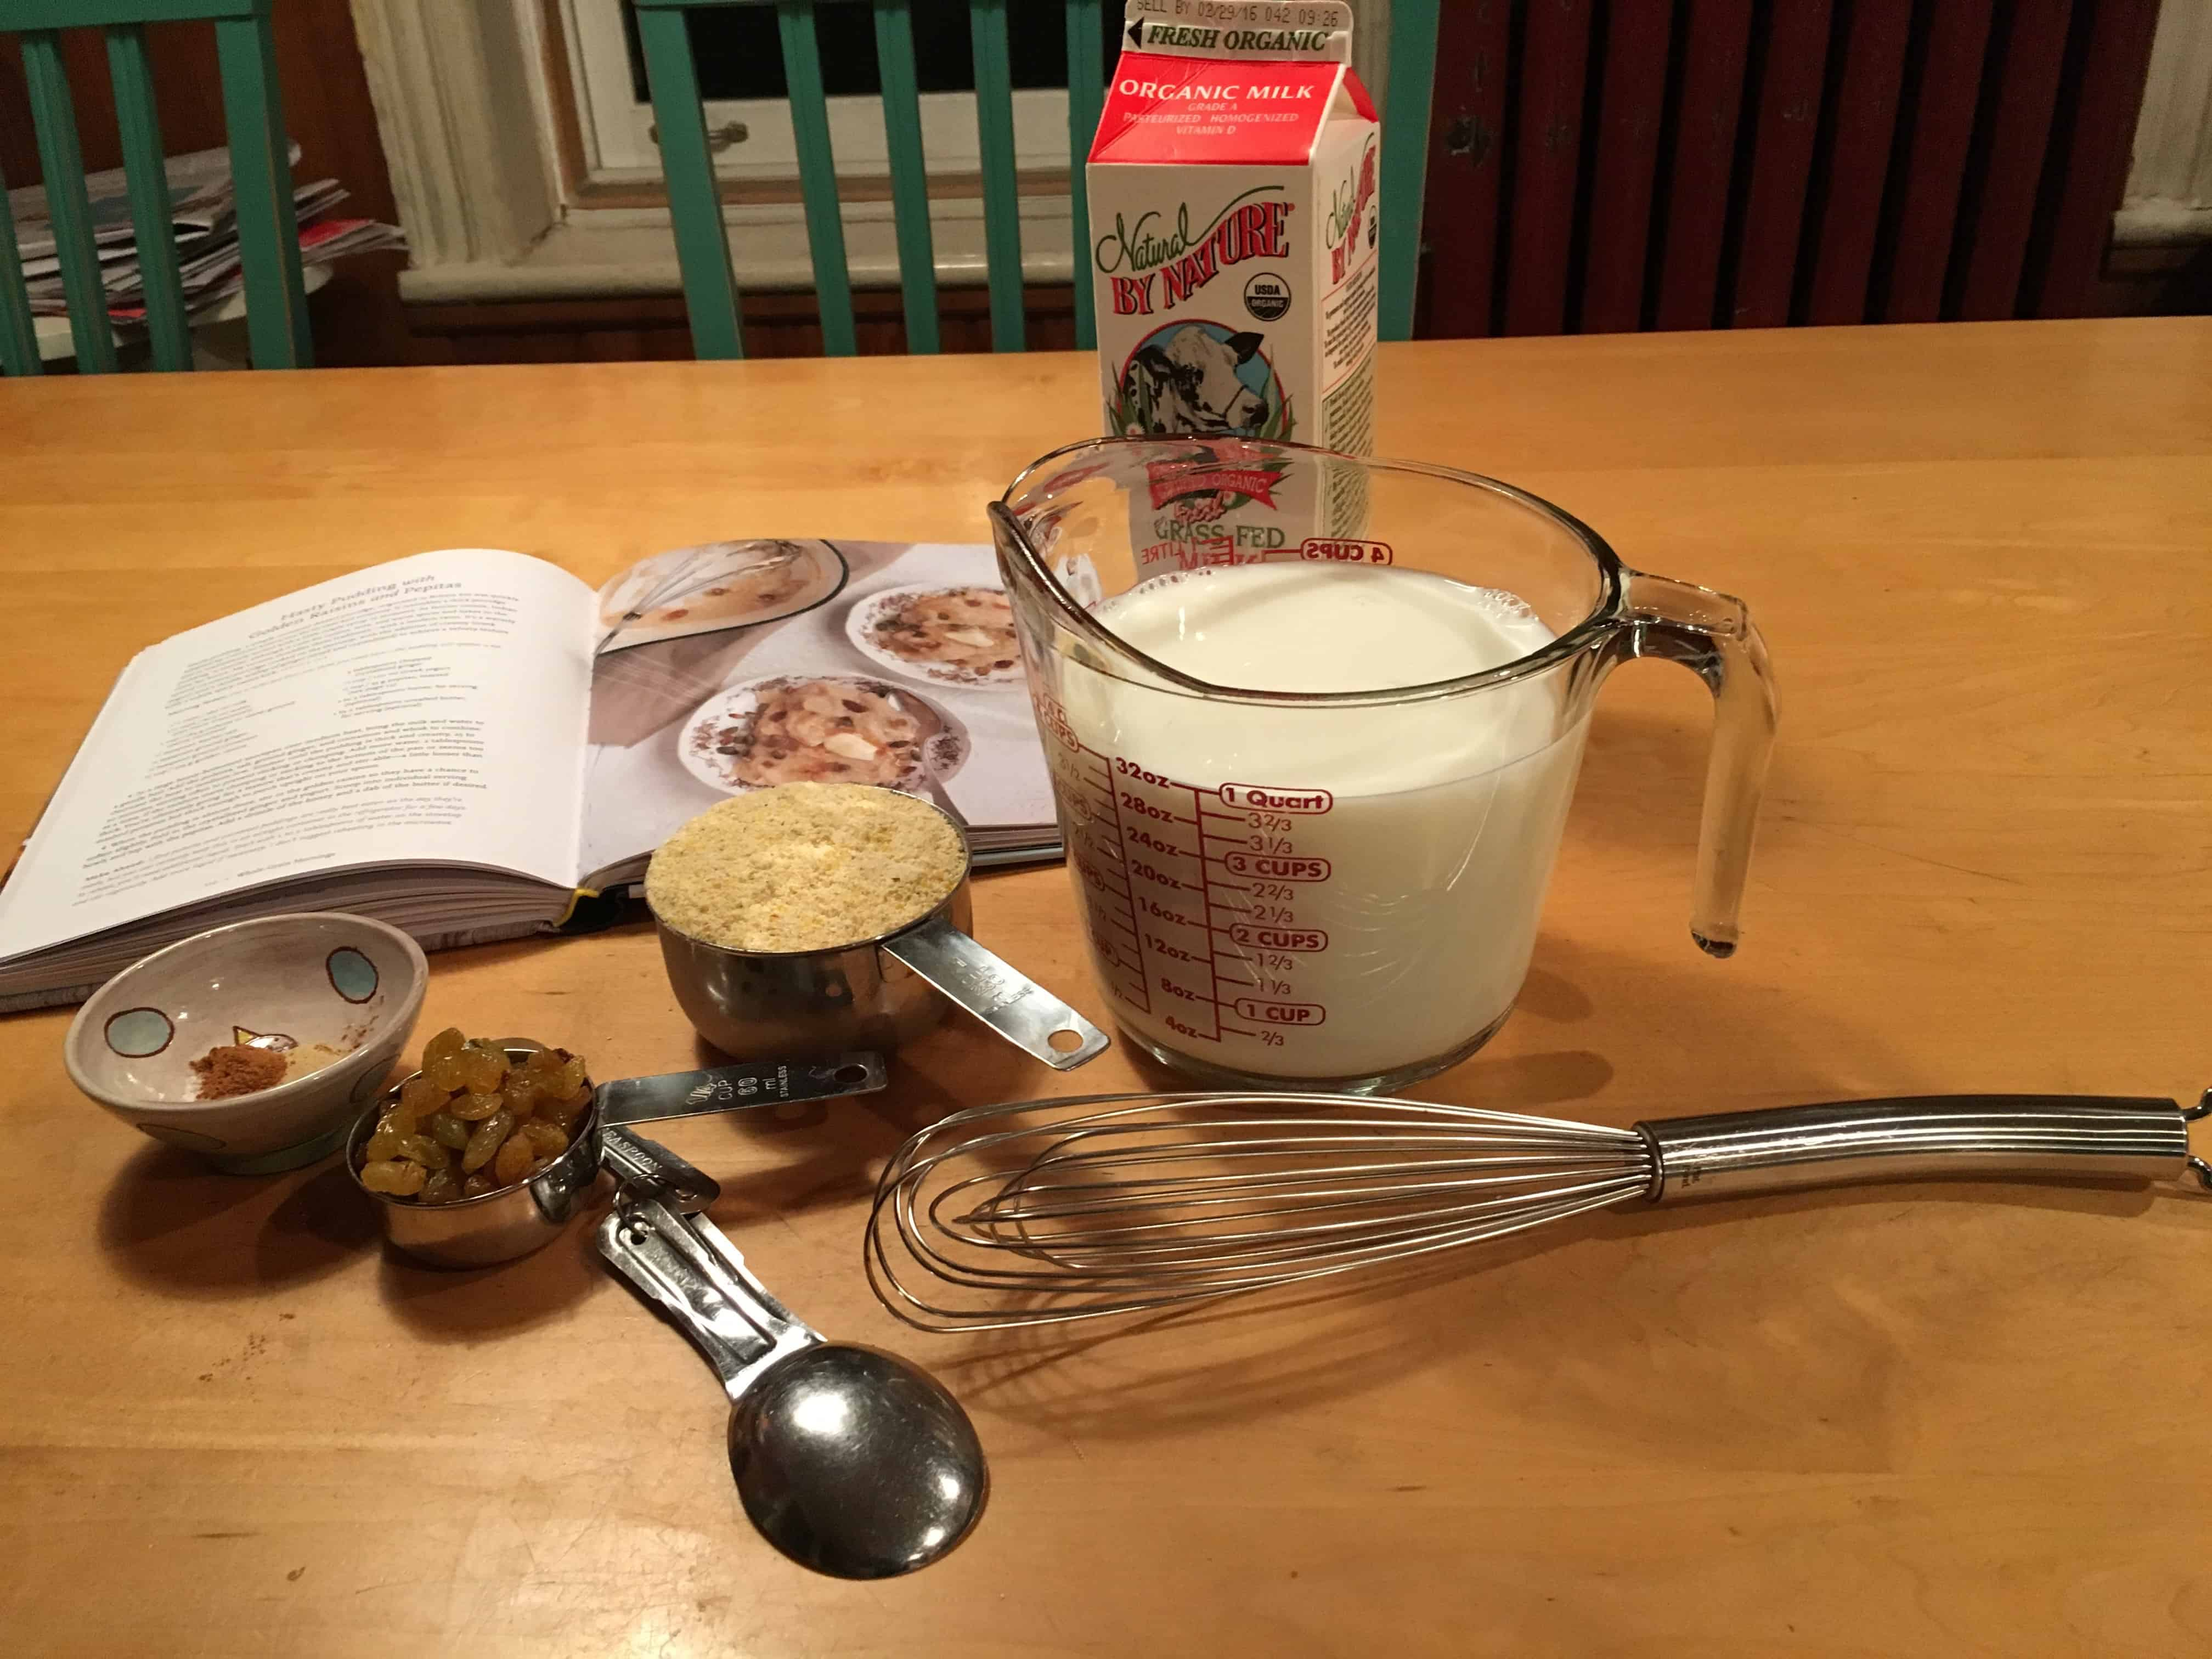 Ingredients for the Hasty Pudding recipe.